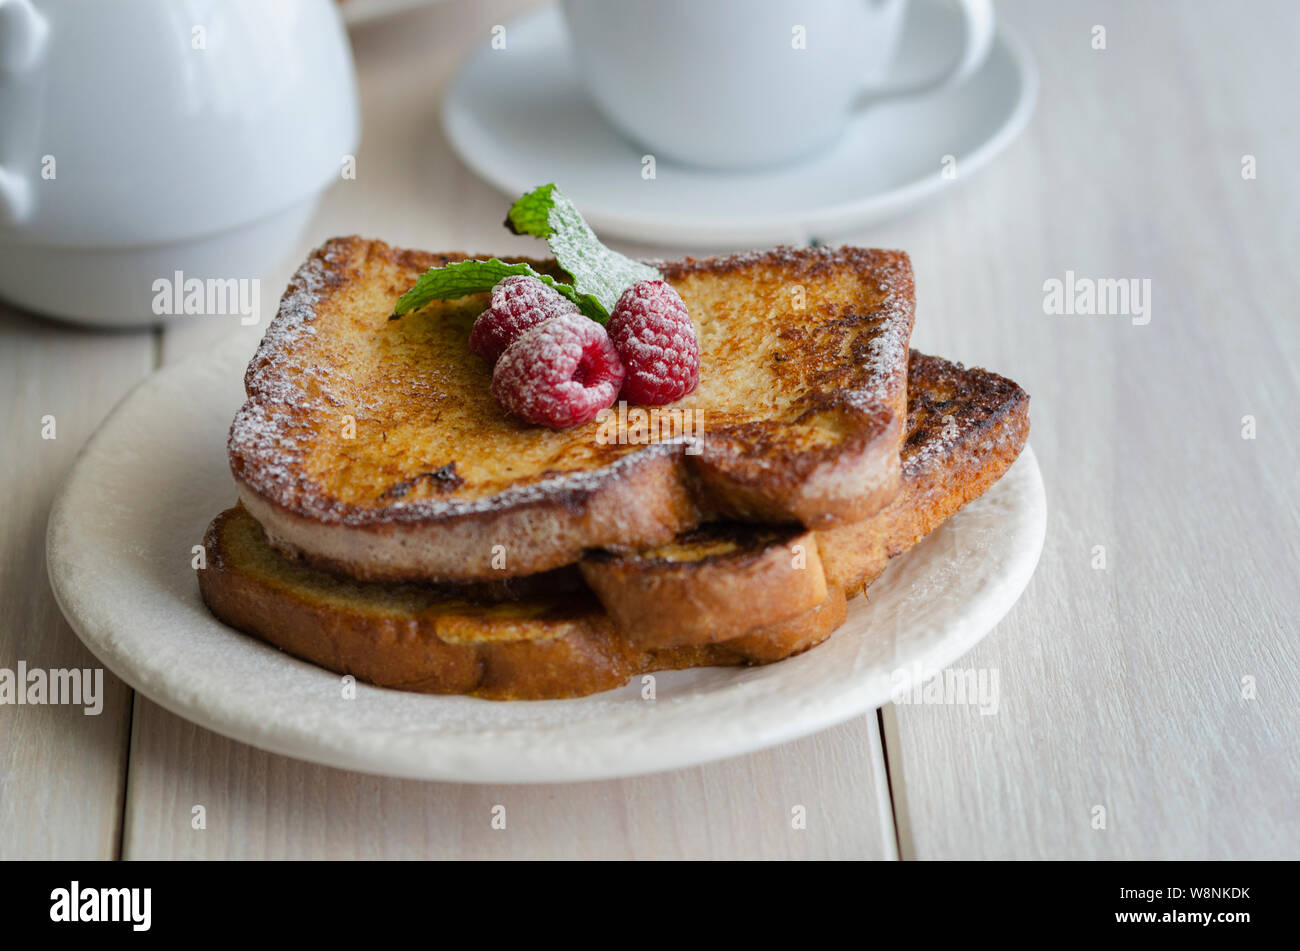 French toast, making with bread soaked in eggs and milk, then fried. Popular sweet dish served decorated with icing sugar and berries served with cup Stock Photo